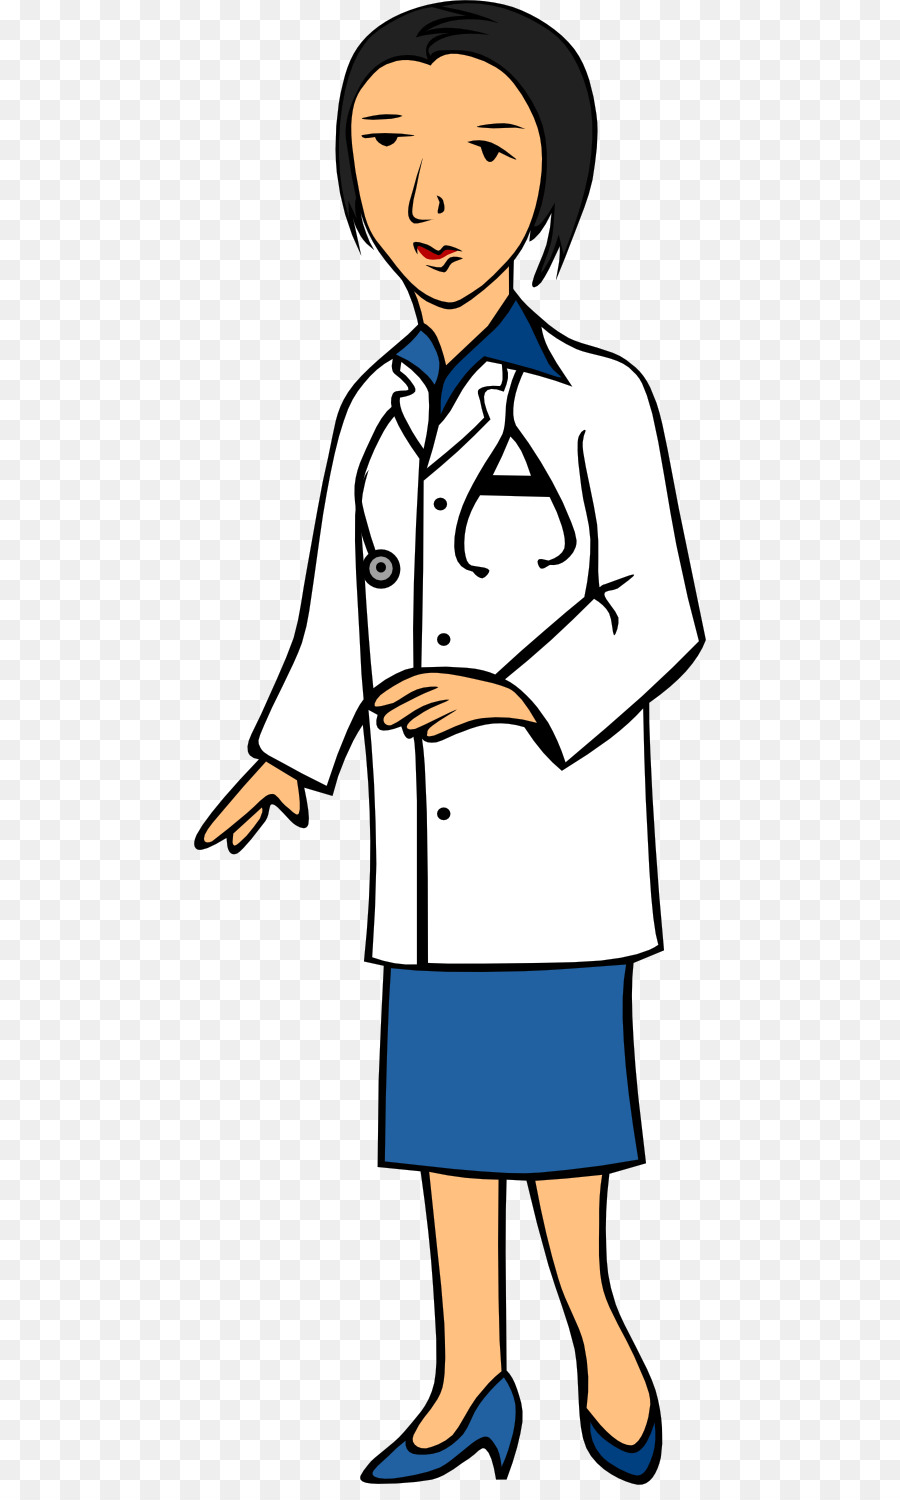 Woman doctor clipart png png transparent Physician Computer Icons Surgeon Clip art - Female Doctor ... png transparent